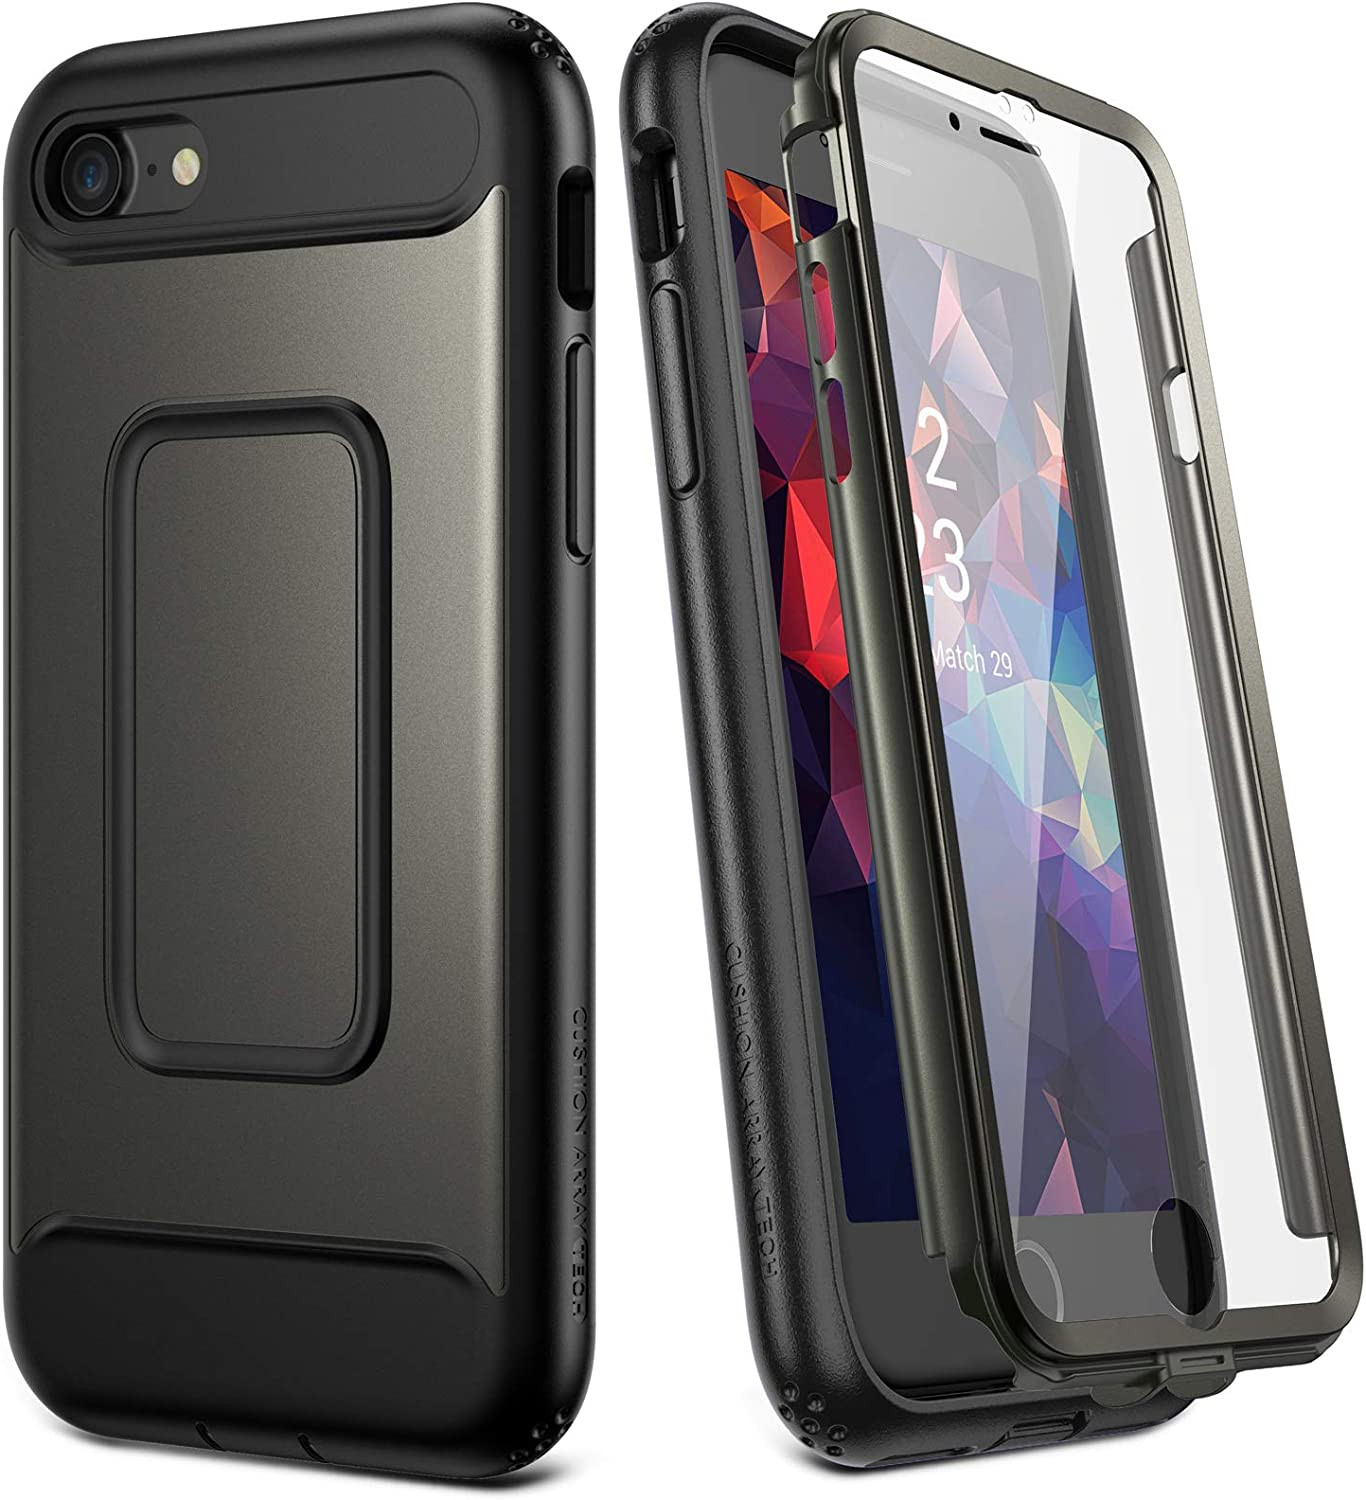 YOUMAKER Designed for iPhone SE 2020 Case/iPhone 8 Case/iPhone 7 Case (NOT PLUS),Full-body Rugged Case with Built-in Screen Protector for iPhone SE 2nd Generation/8/7 4.7 Inch - Gunmetal